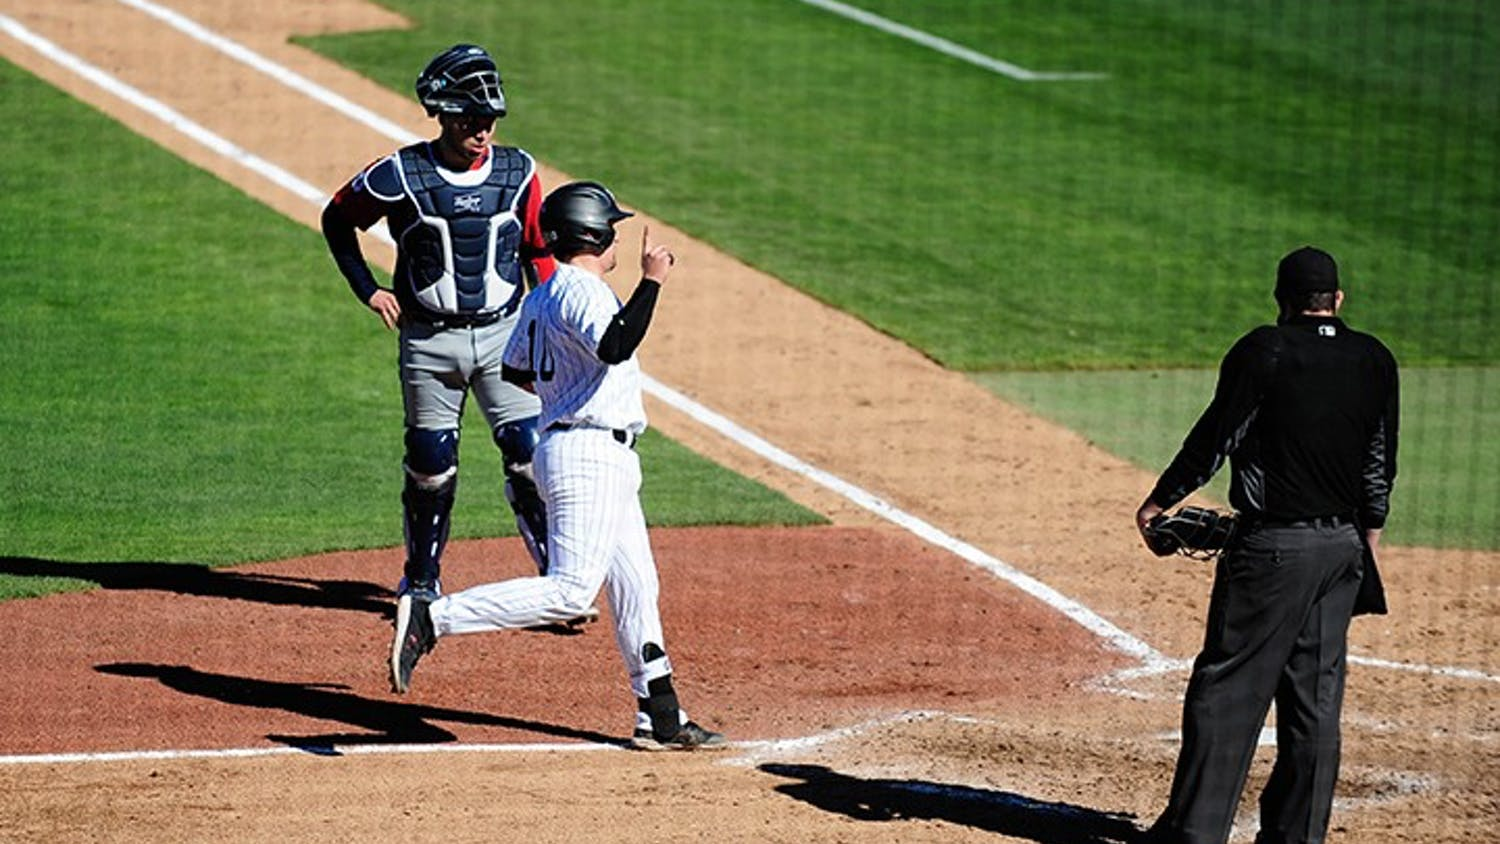 Sophomore catcher Colin Burgess scores against Dayton. South Carolina swept the three-game series against the Flyers to open the 2021 season.